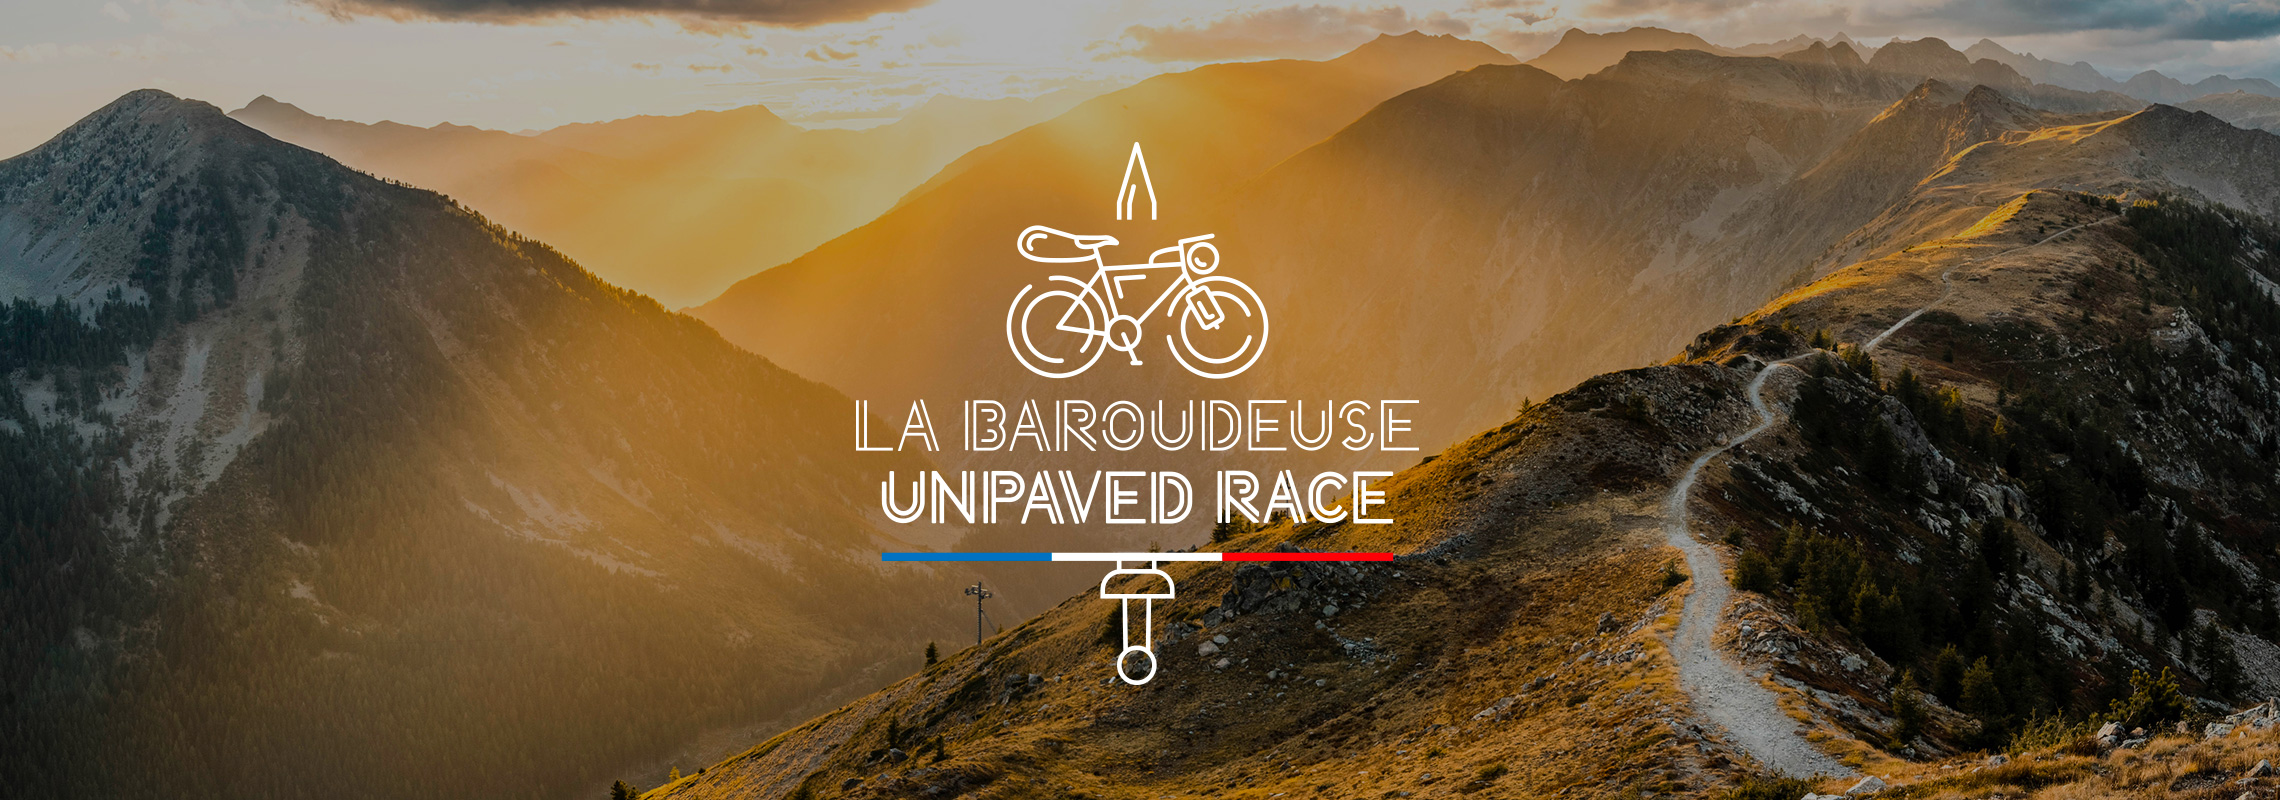 La Baroudeuse Unpaved Race